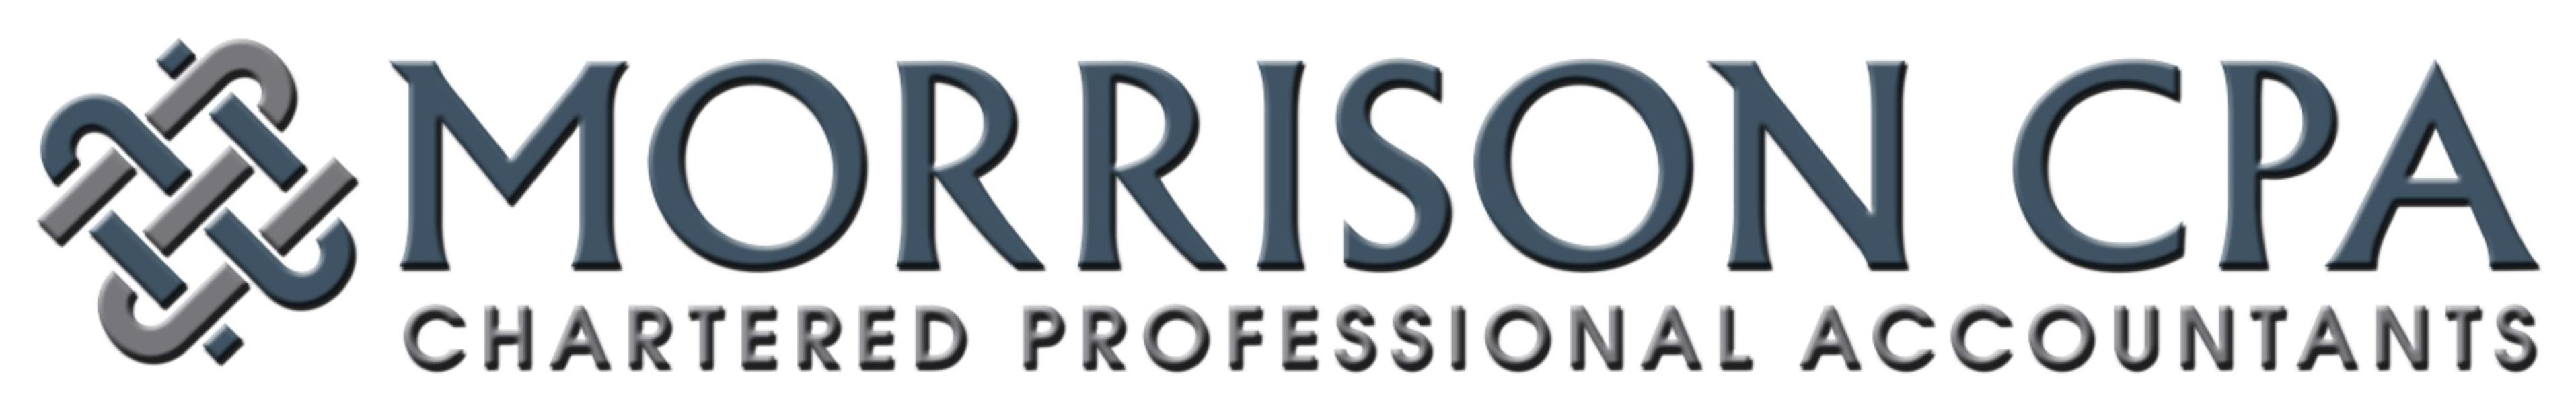 MorrisonCPA Chartered Professional Accountants